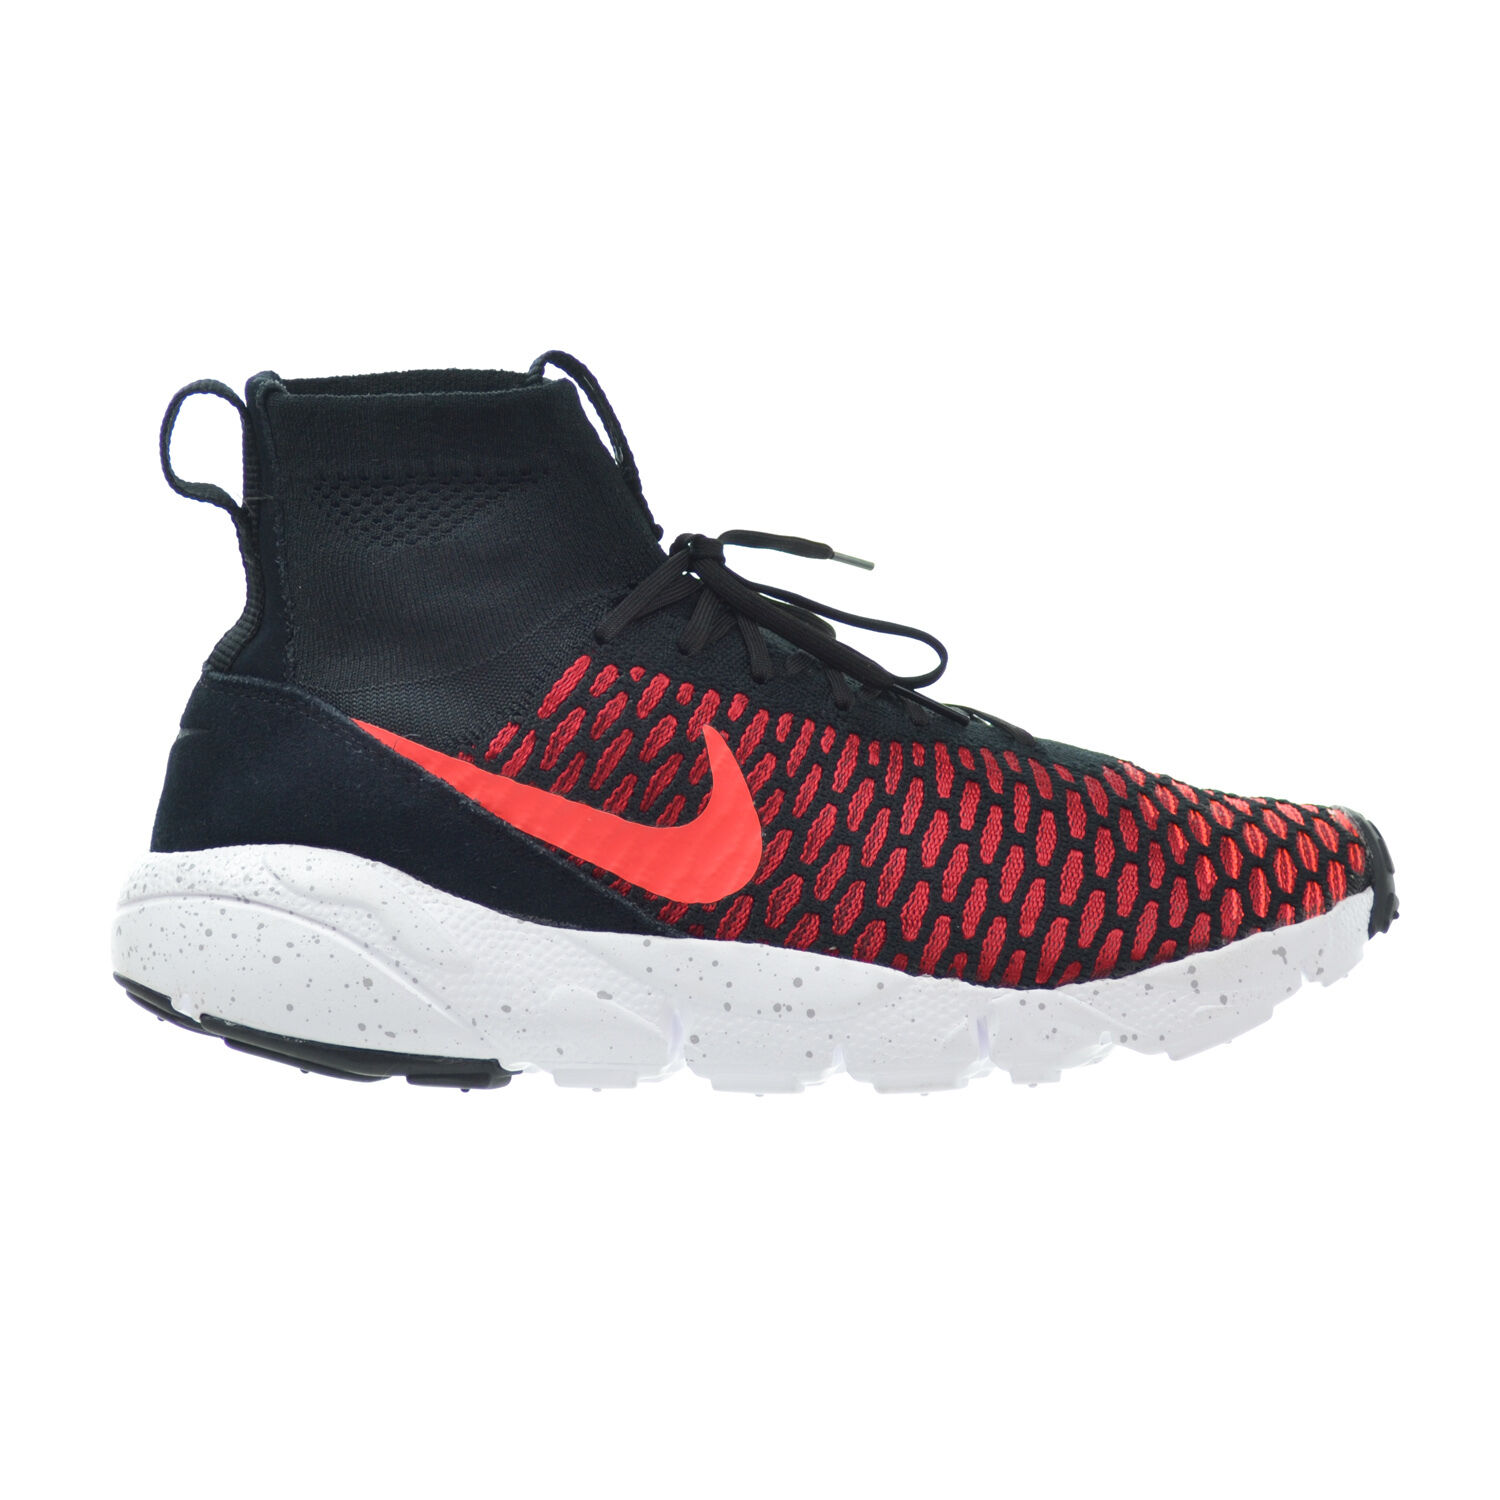 Nike Air Footscape Magista Flyknit Men's Shoes Black/Crimson/Red/Grey 816560-002